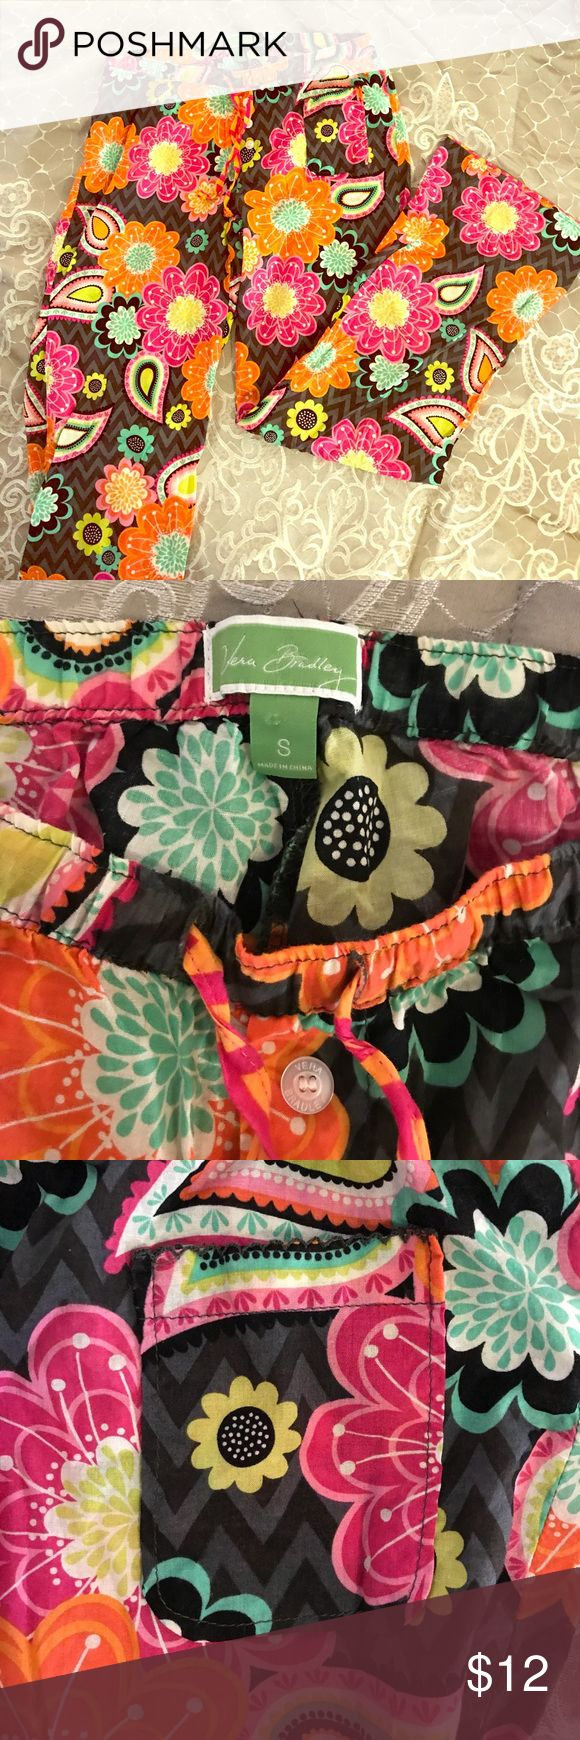 Vera Bradley Ziggy Zinnia sleep pants So cute!!  These pajama bottoms are great for summer because they are so light.  Very comfy.  Elastic waste band.  Size small.  Excellent used condition. Vera Bradley Intimates & Sleepwear Pajamas